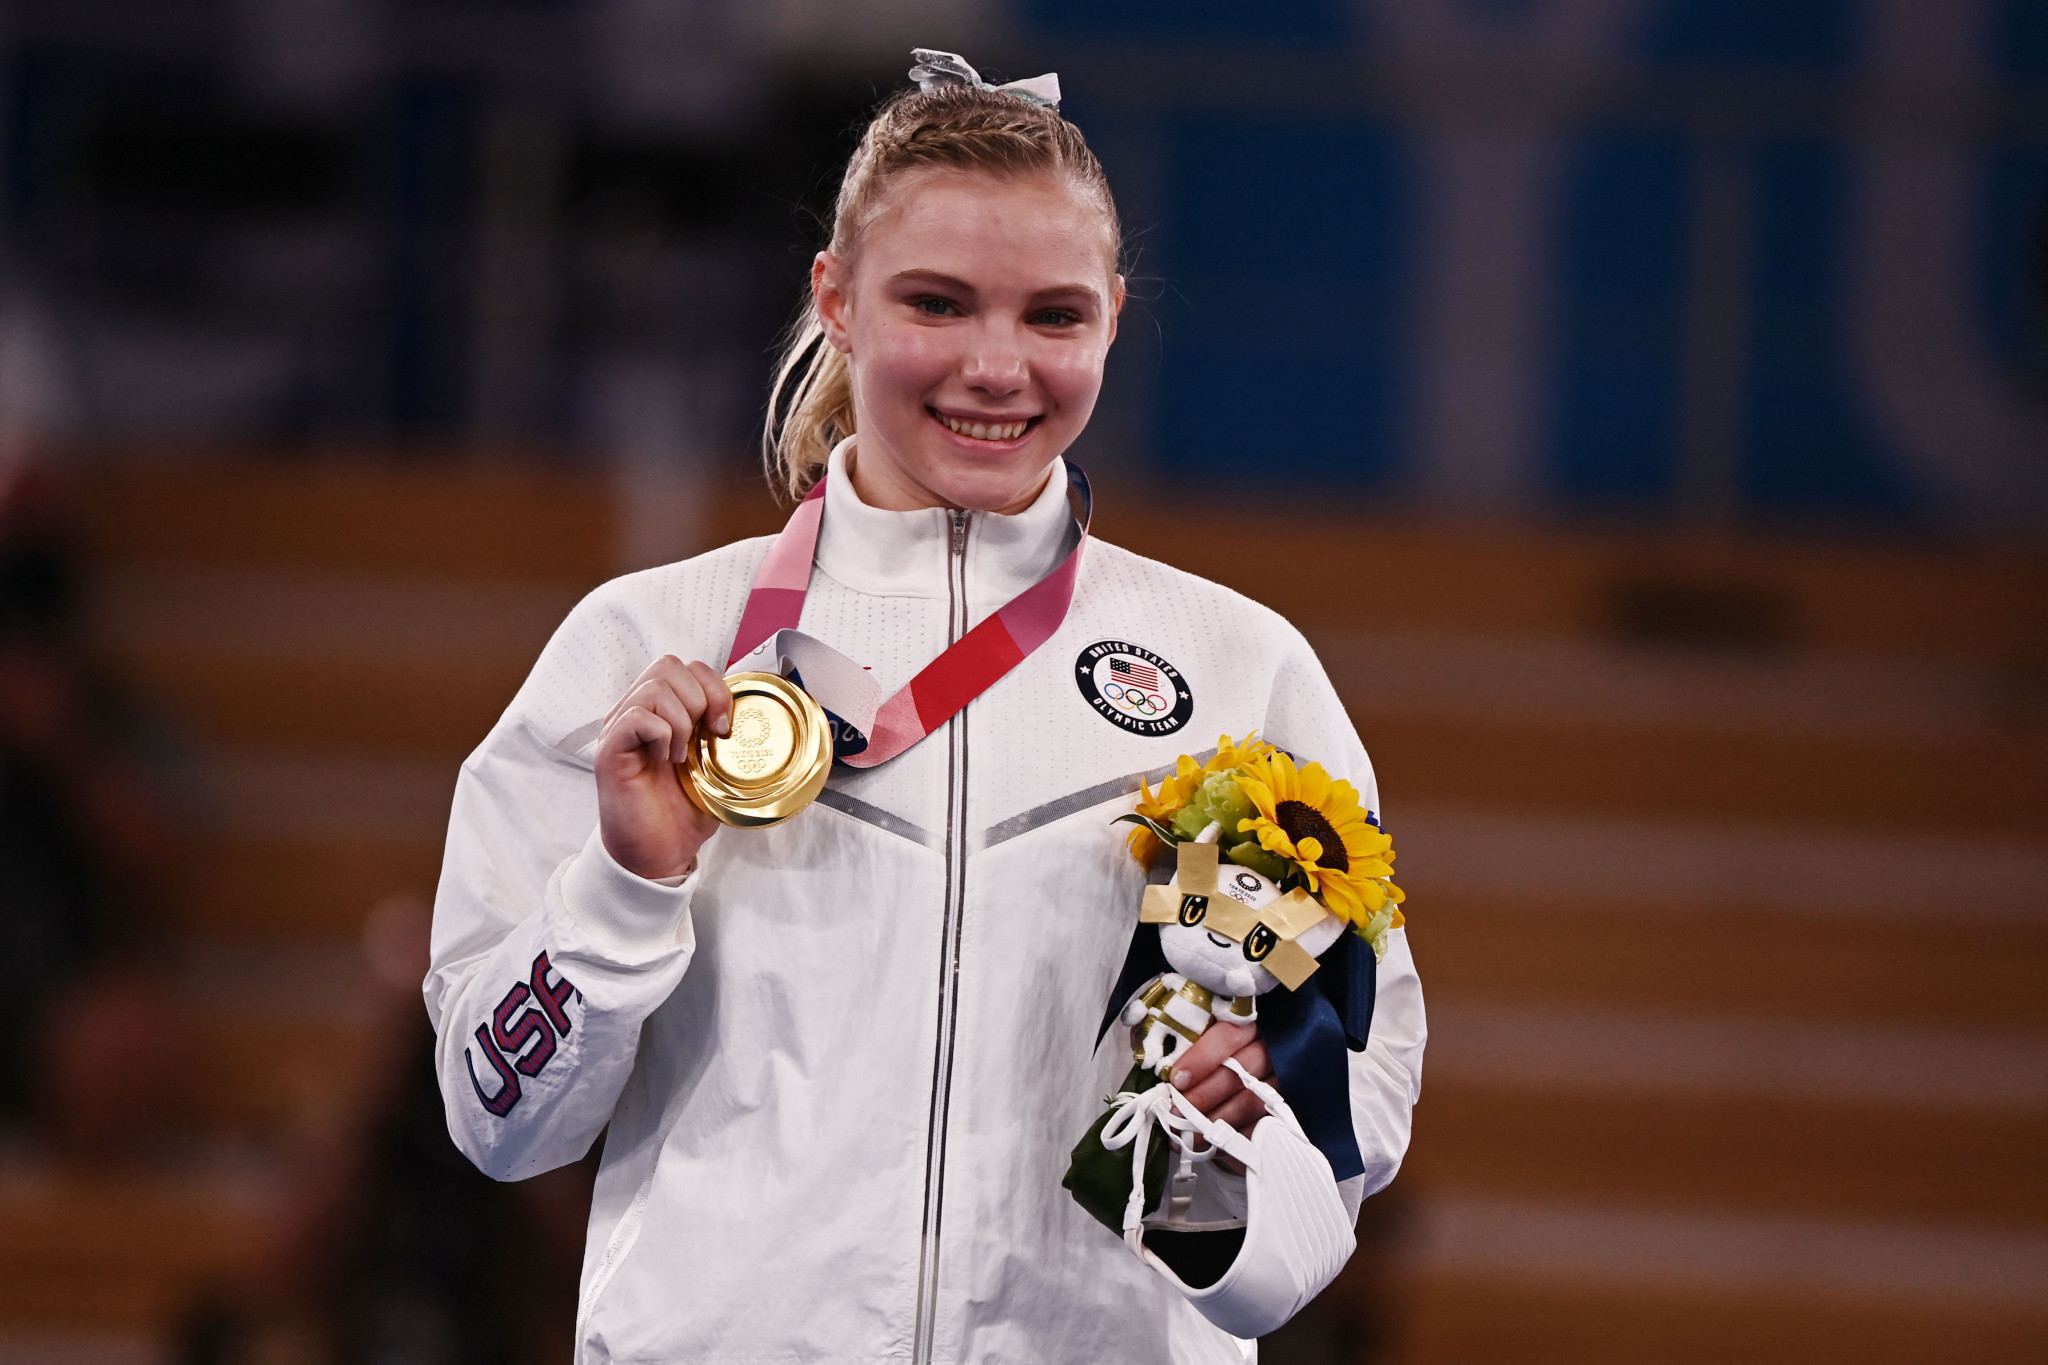 Carey gains redemption with women's floor exercise gold after vault trip